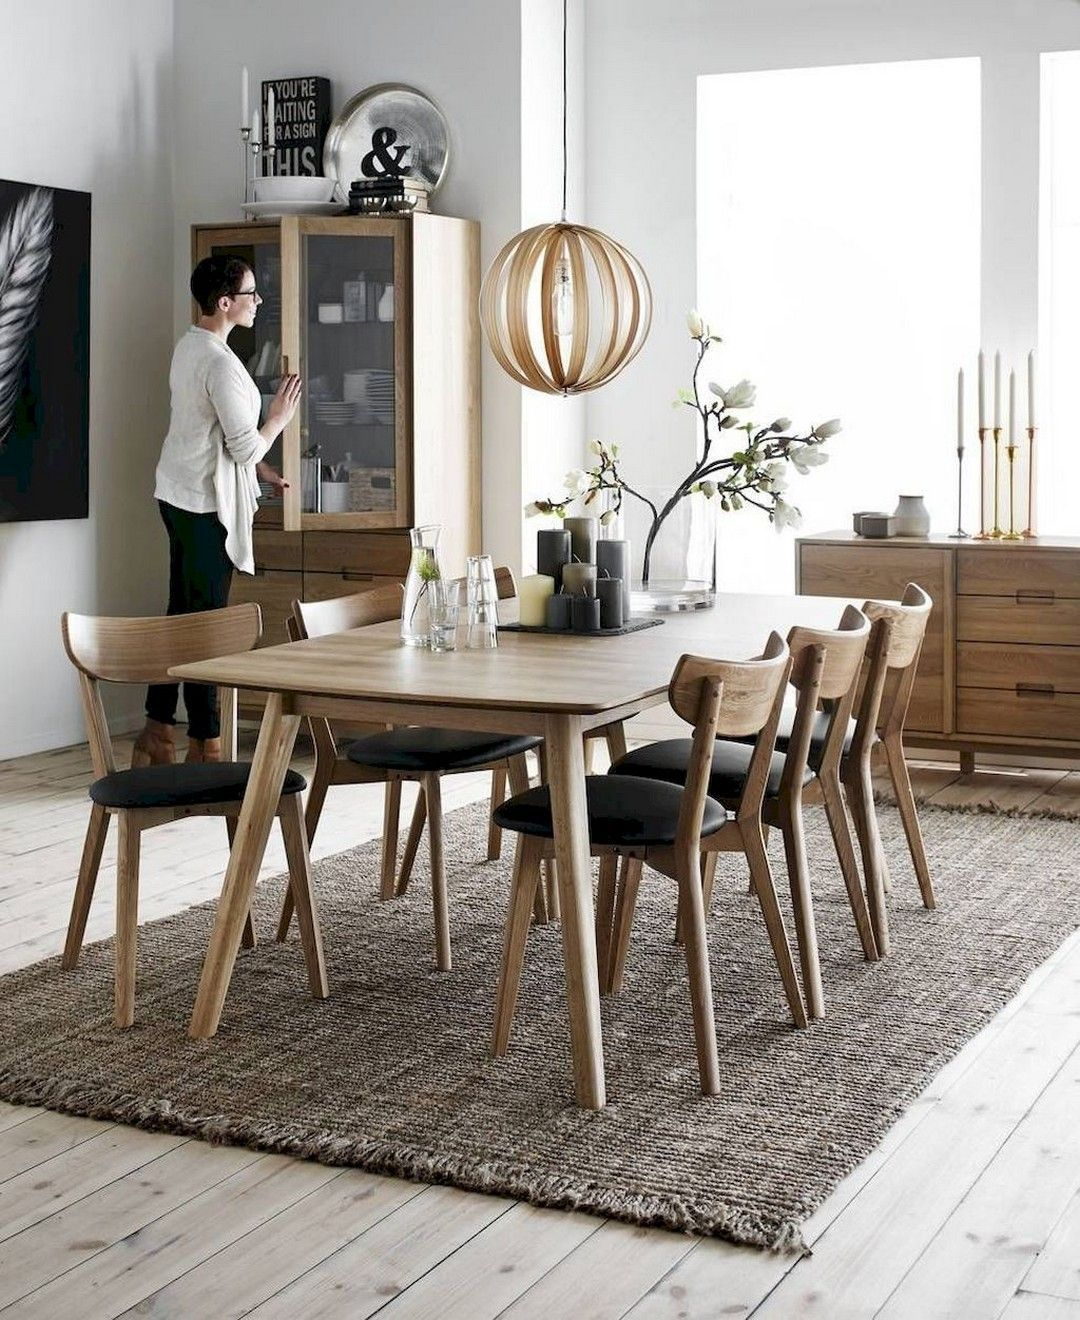 32 More Stunning Scandinavian Dining Rooms: 70 Dining Room Decorating Idea And Model Home Tour